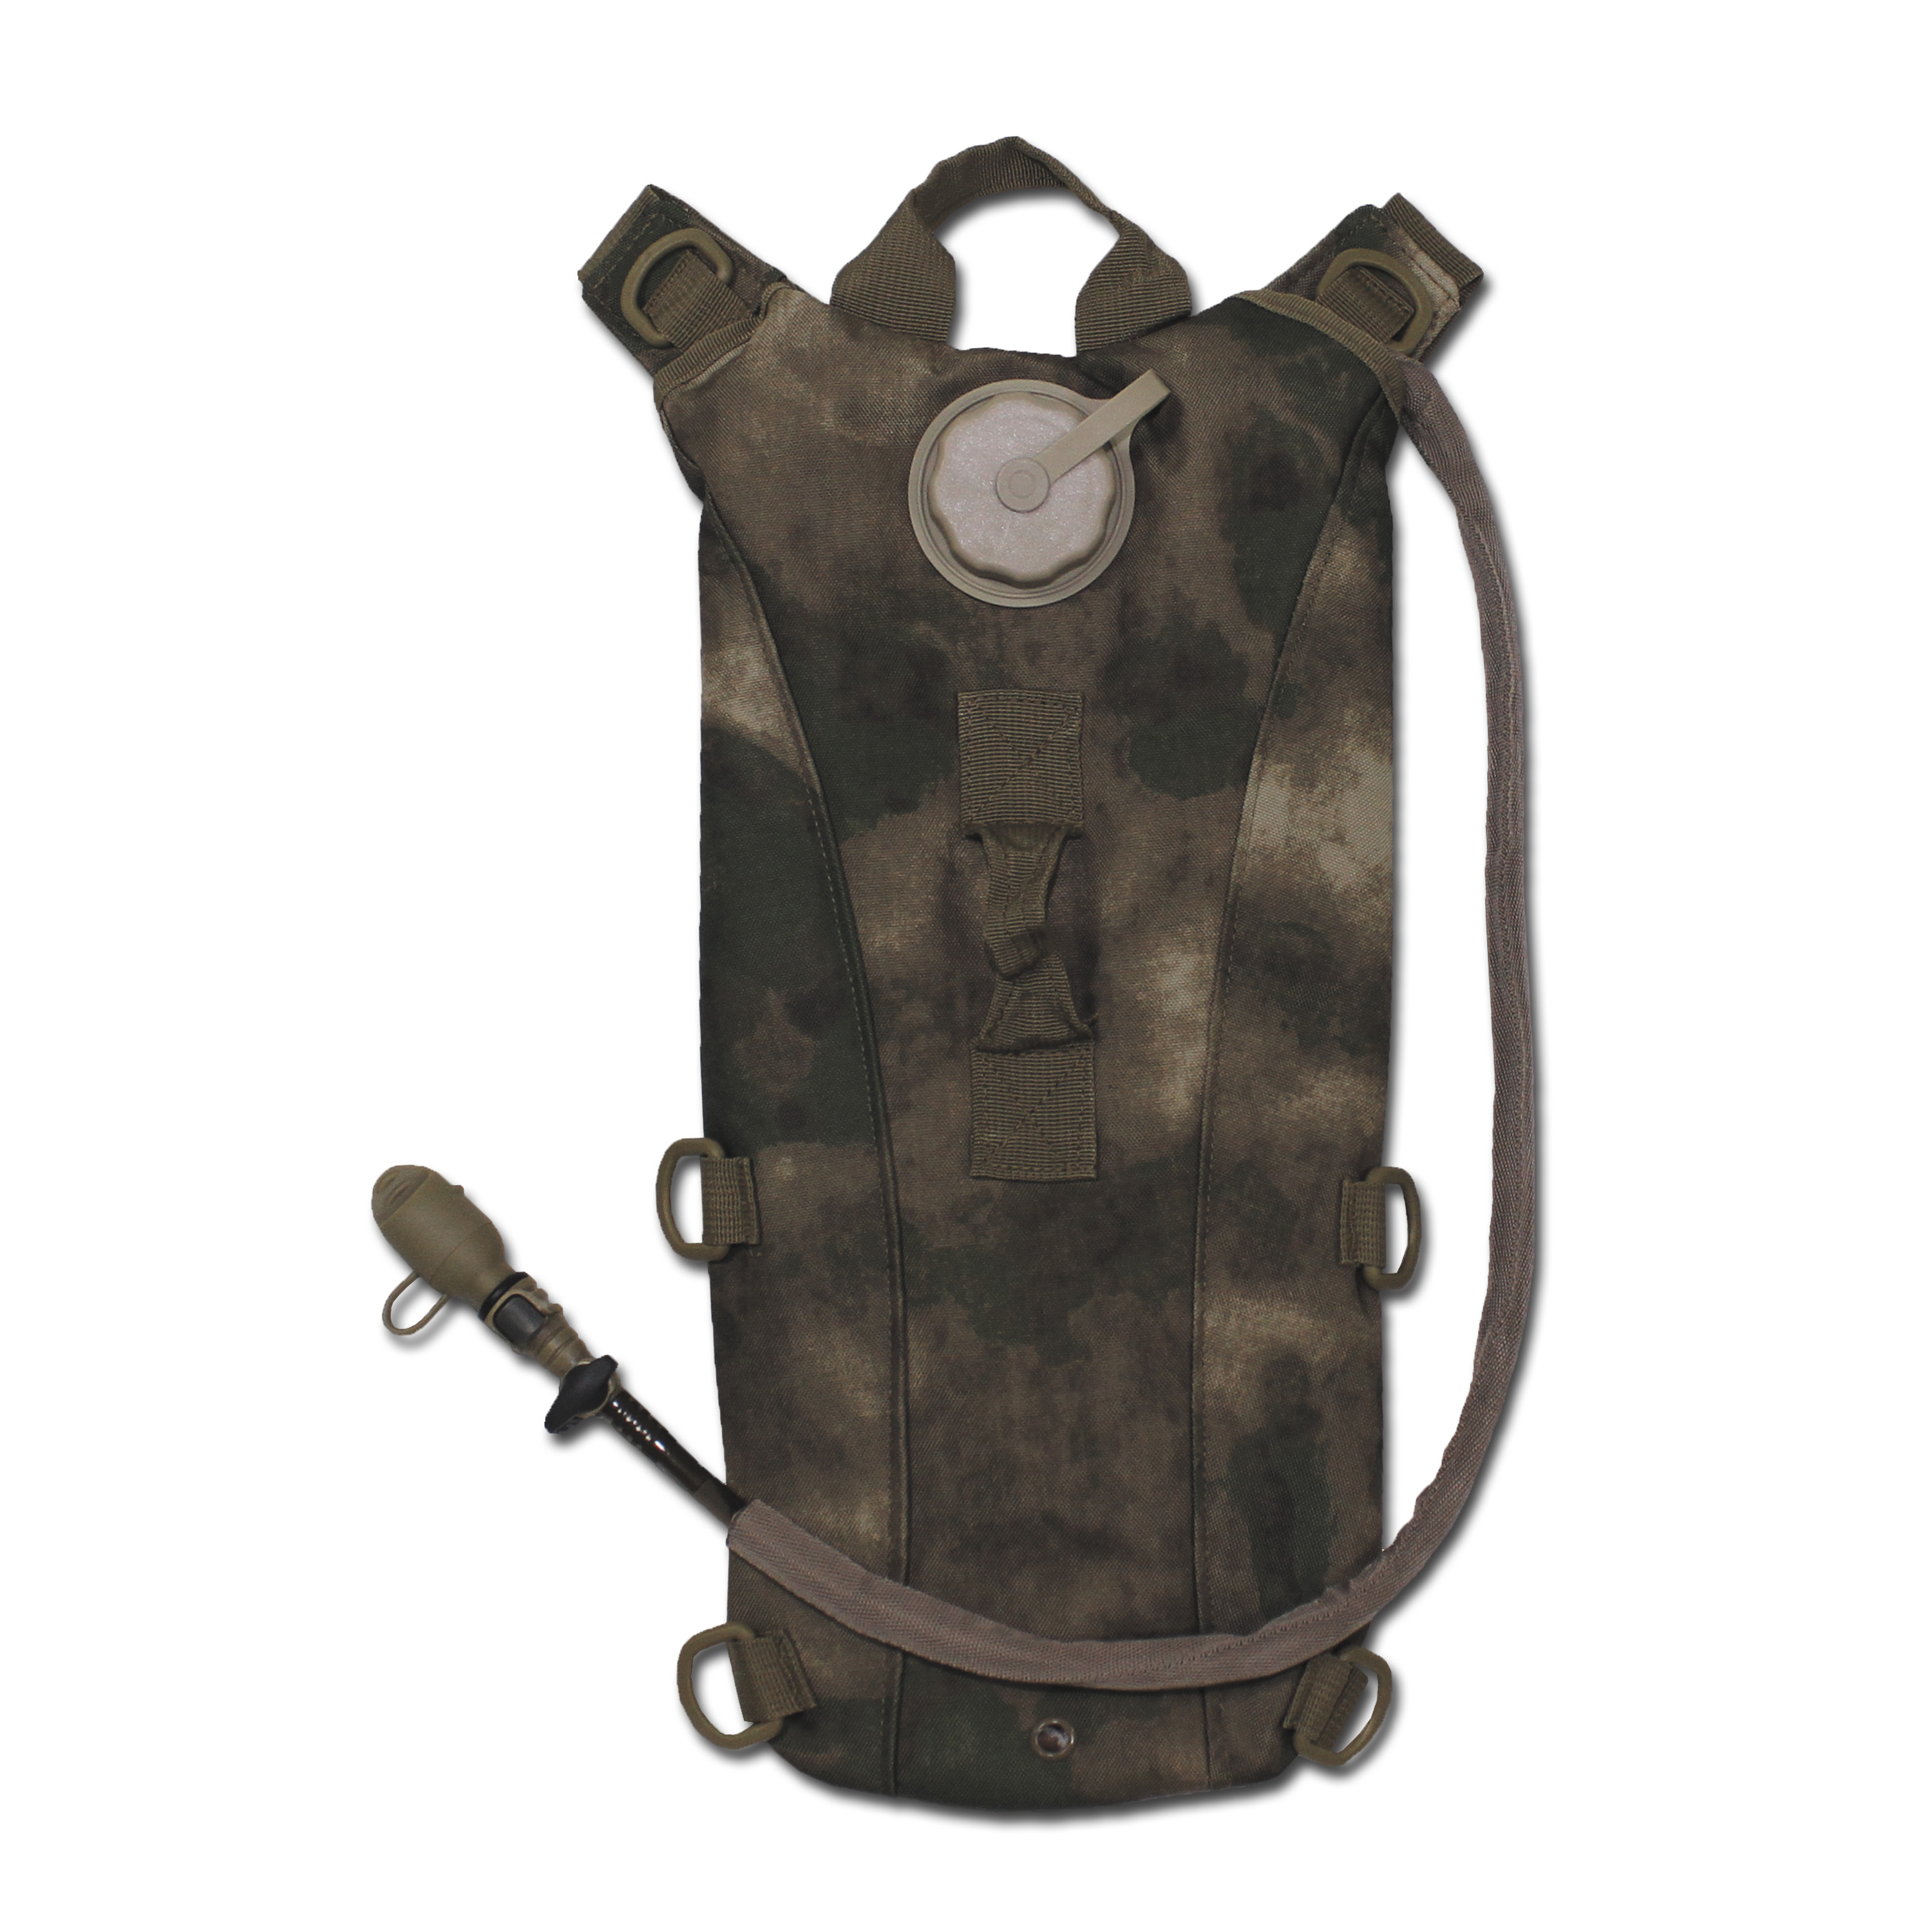 Hydration Pack MFH Extreme HDT-camo FG